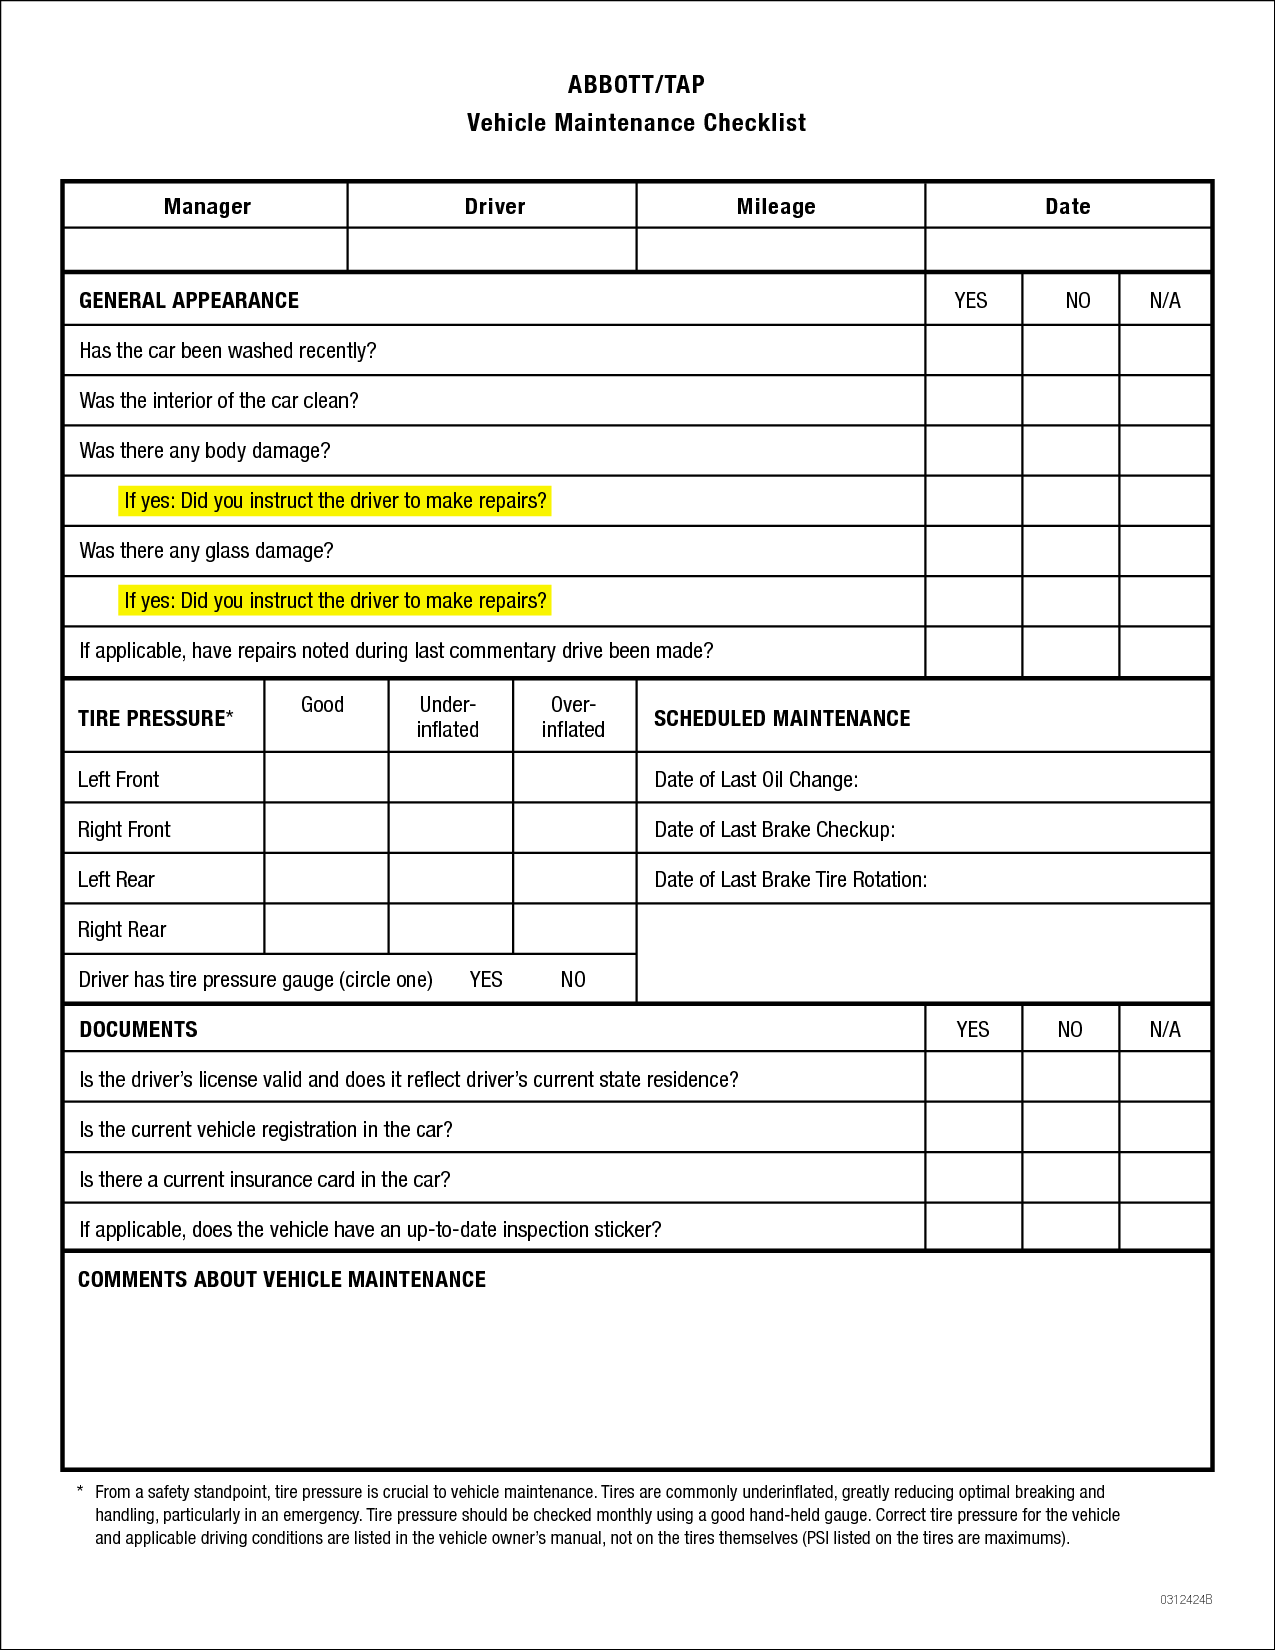 Vehicle Maintenance Checklist Template Want A Smart Way To